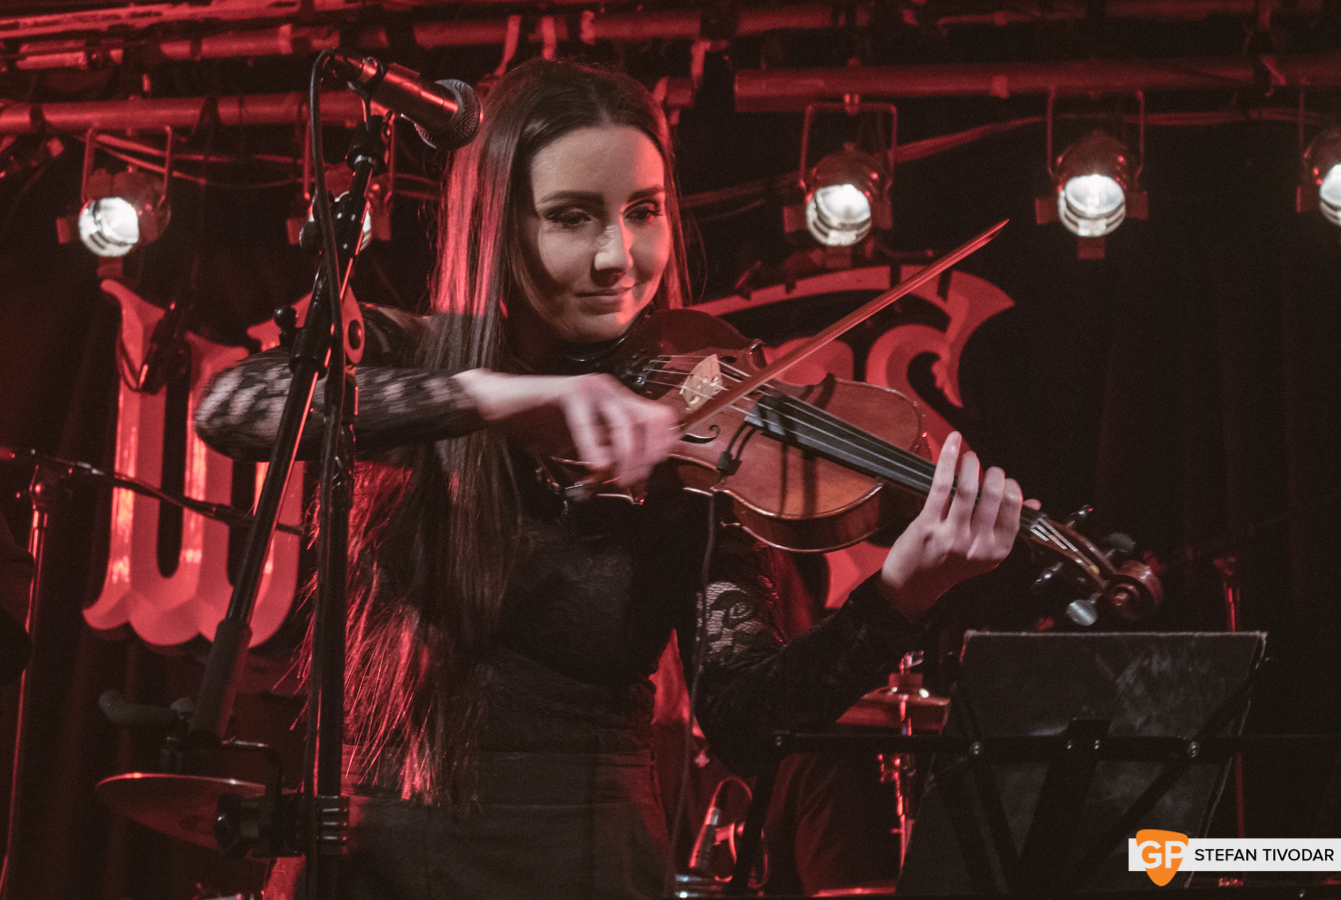 Carron Whelans Ones to Watch Winter 2019 Day Whelans Ones to Watch Winter 2019 Day 5 4